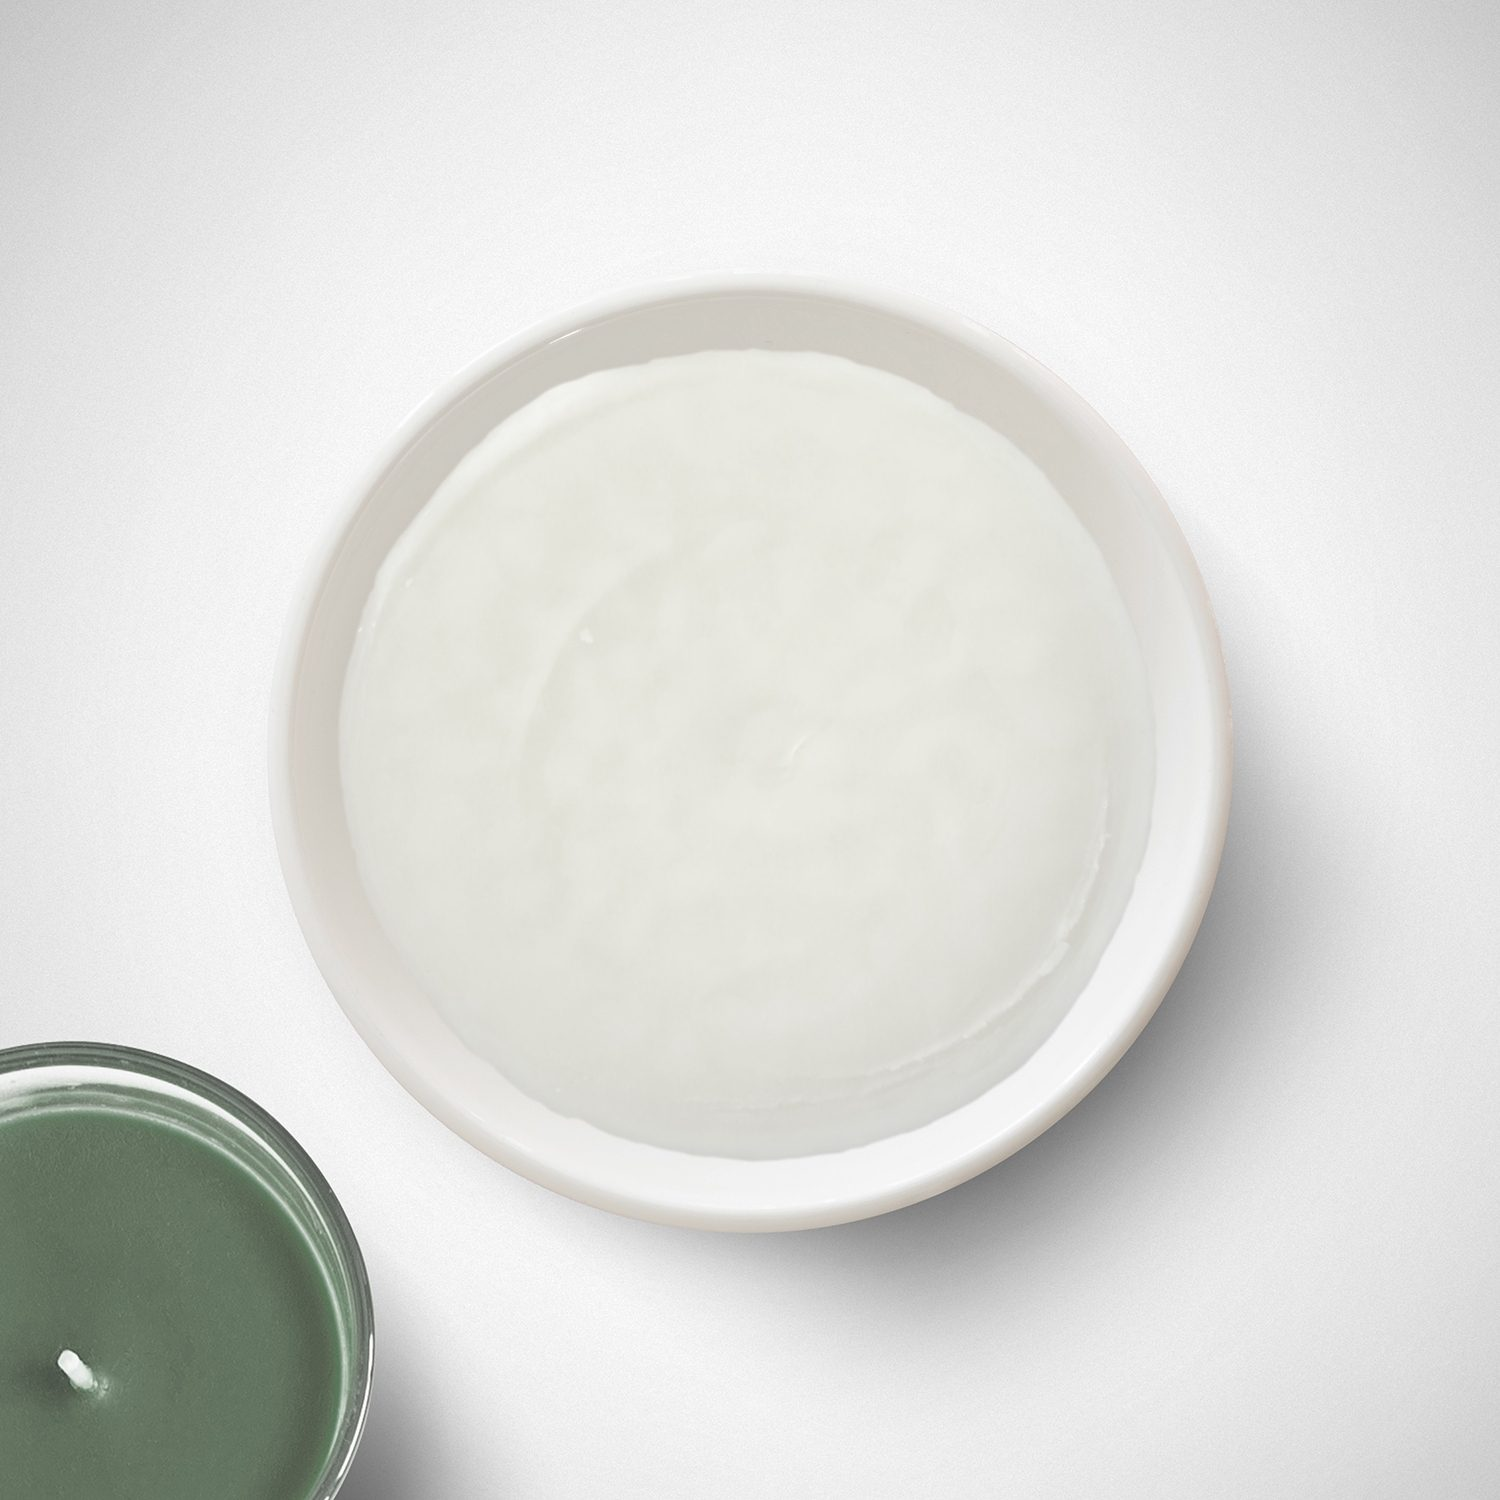 Fully refined wax derived from paraffin – supplied by H Foster.